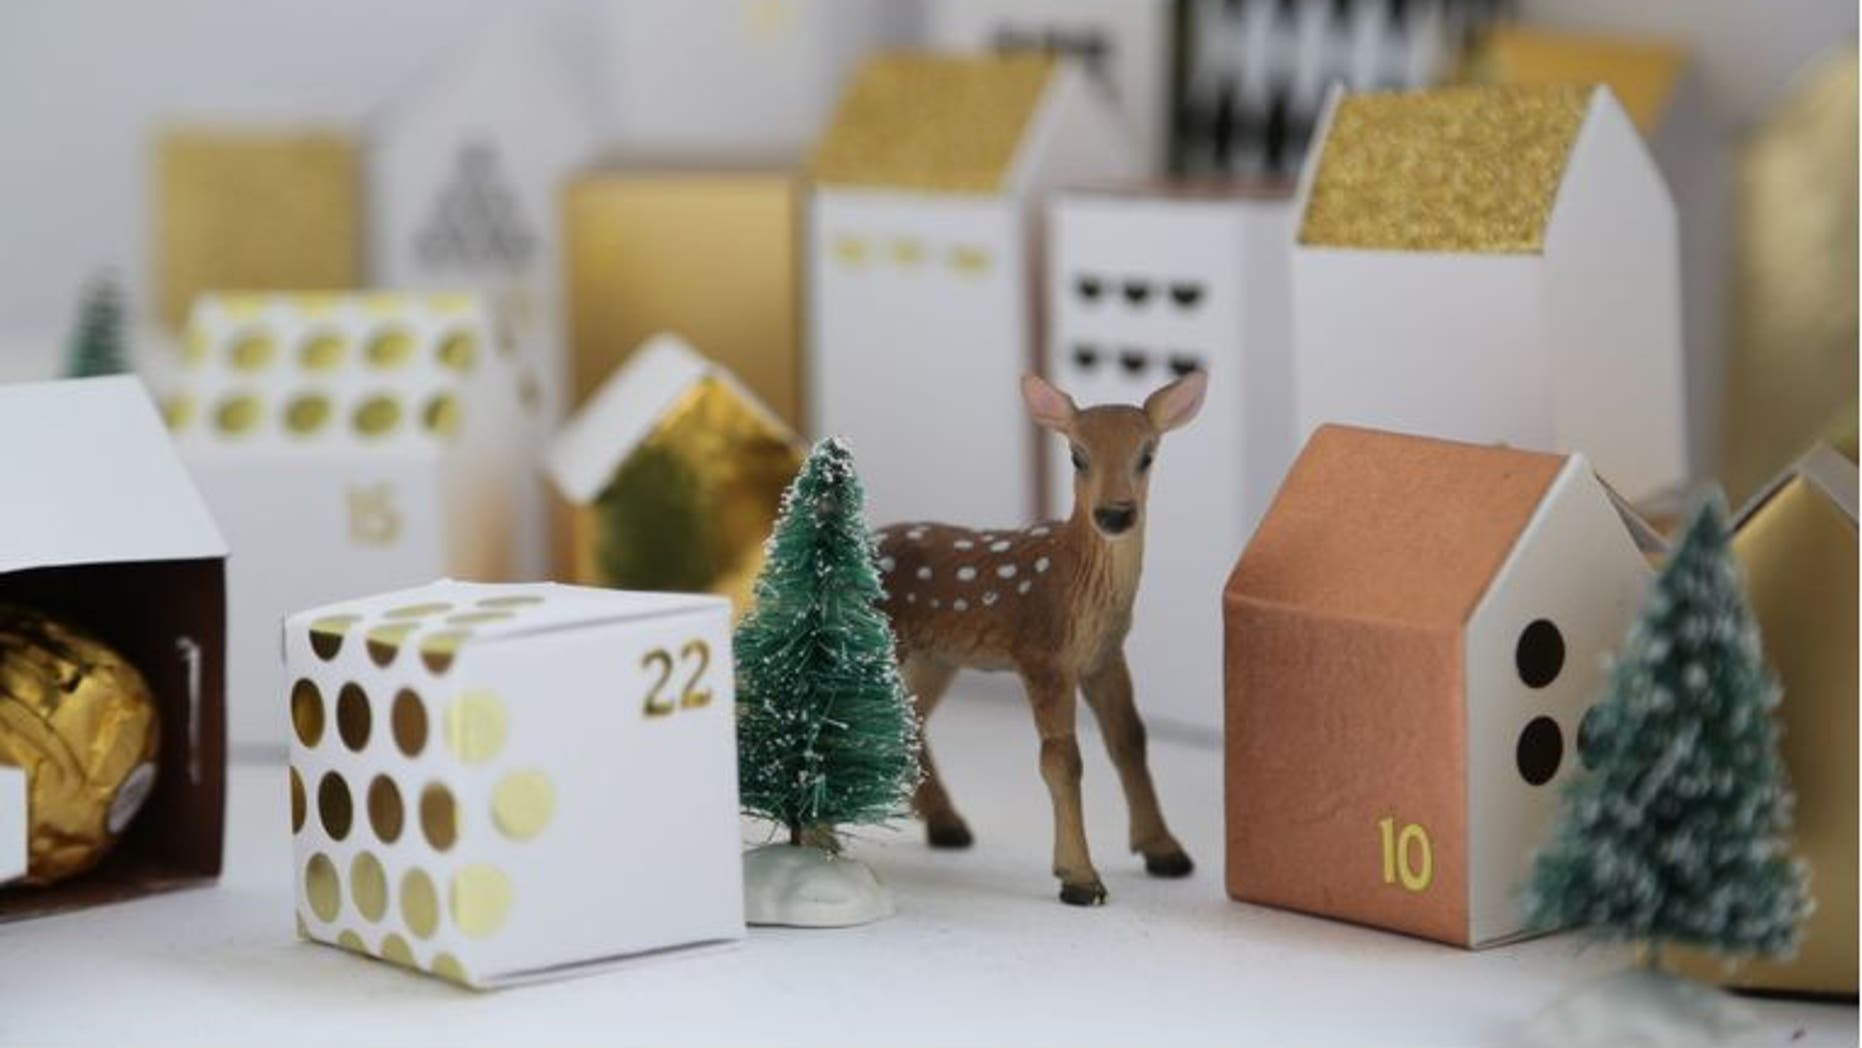 forgo a store bought gift and make this year more meaningful by crafting your own gifts by hand with the